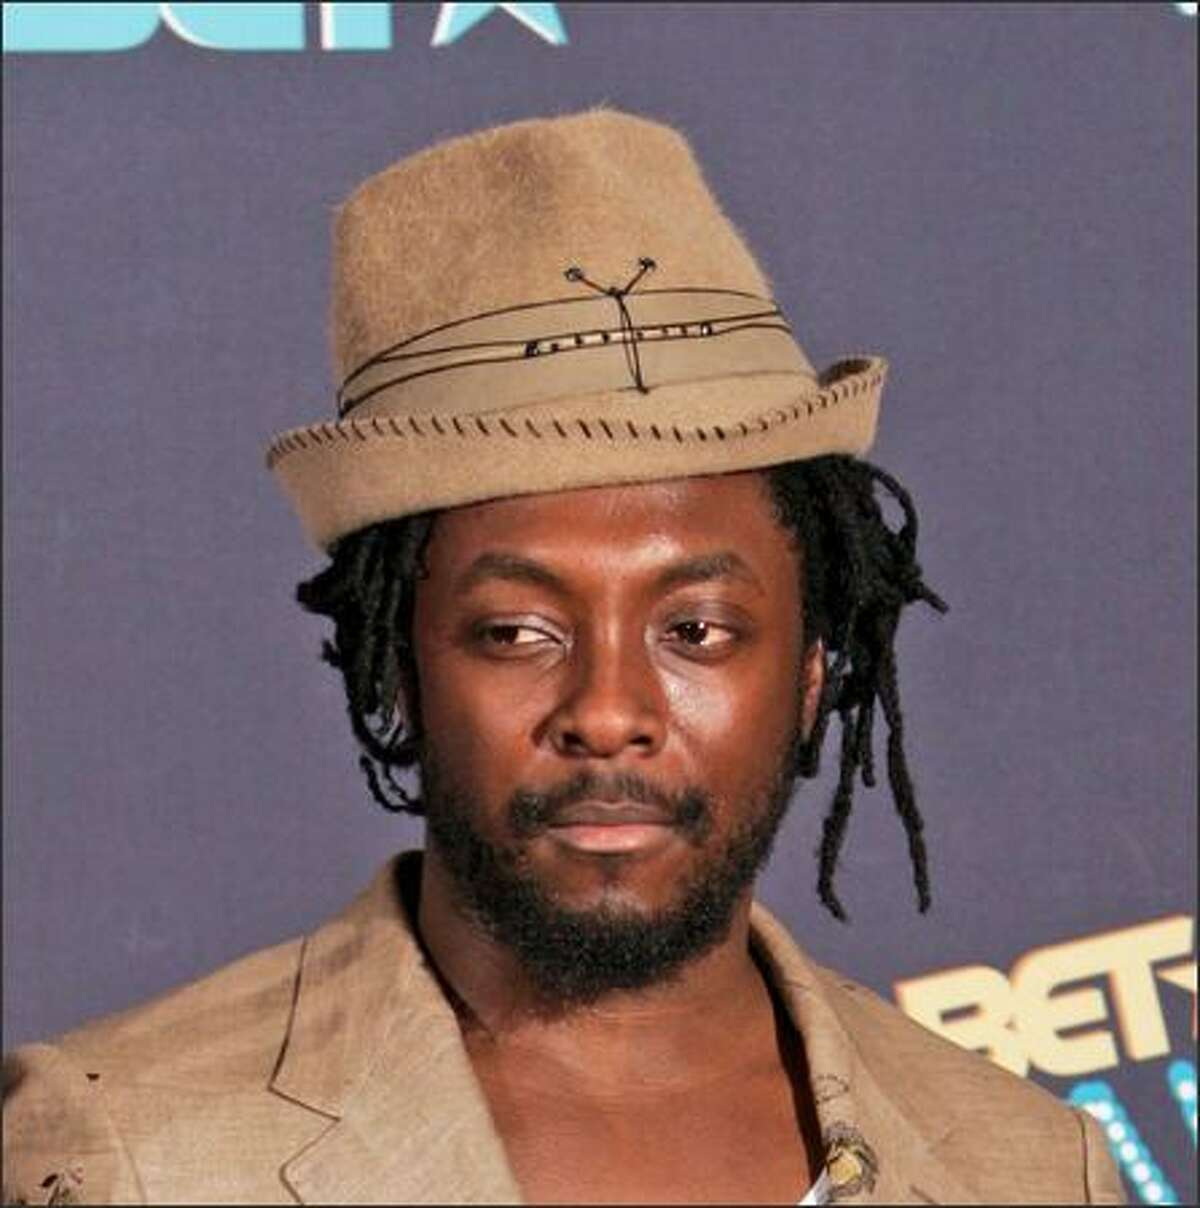 """Say it isn't so: Black Eyed Peas' charming lead singer Will.i.am (William Adams) is being investigated by Berlin police after a brawl involving """"serious bodily harm"""" to a club doorman, says The Associated Press. He's shown here last week at the sixth annual BET Awards in Los Angeles."""